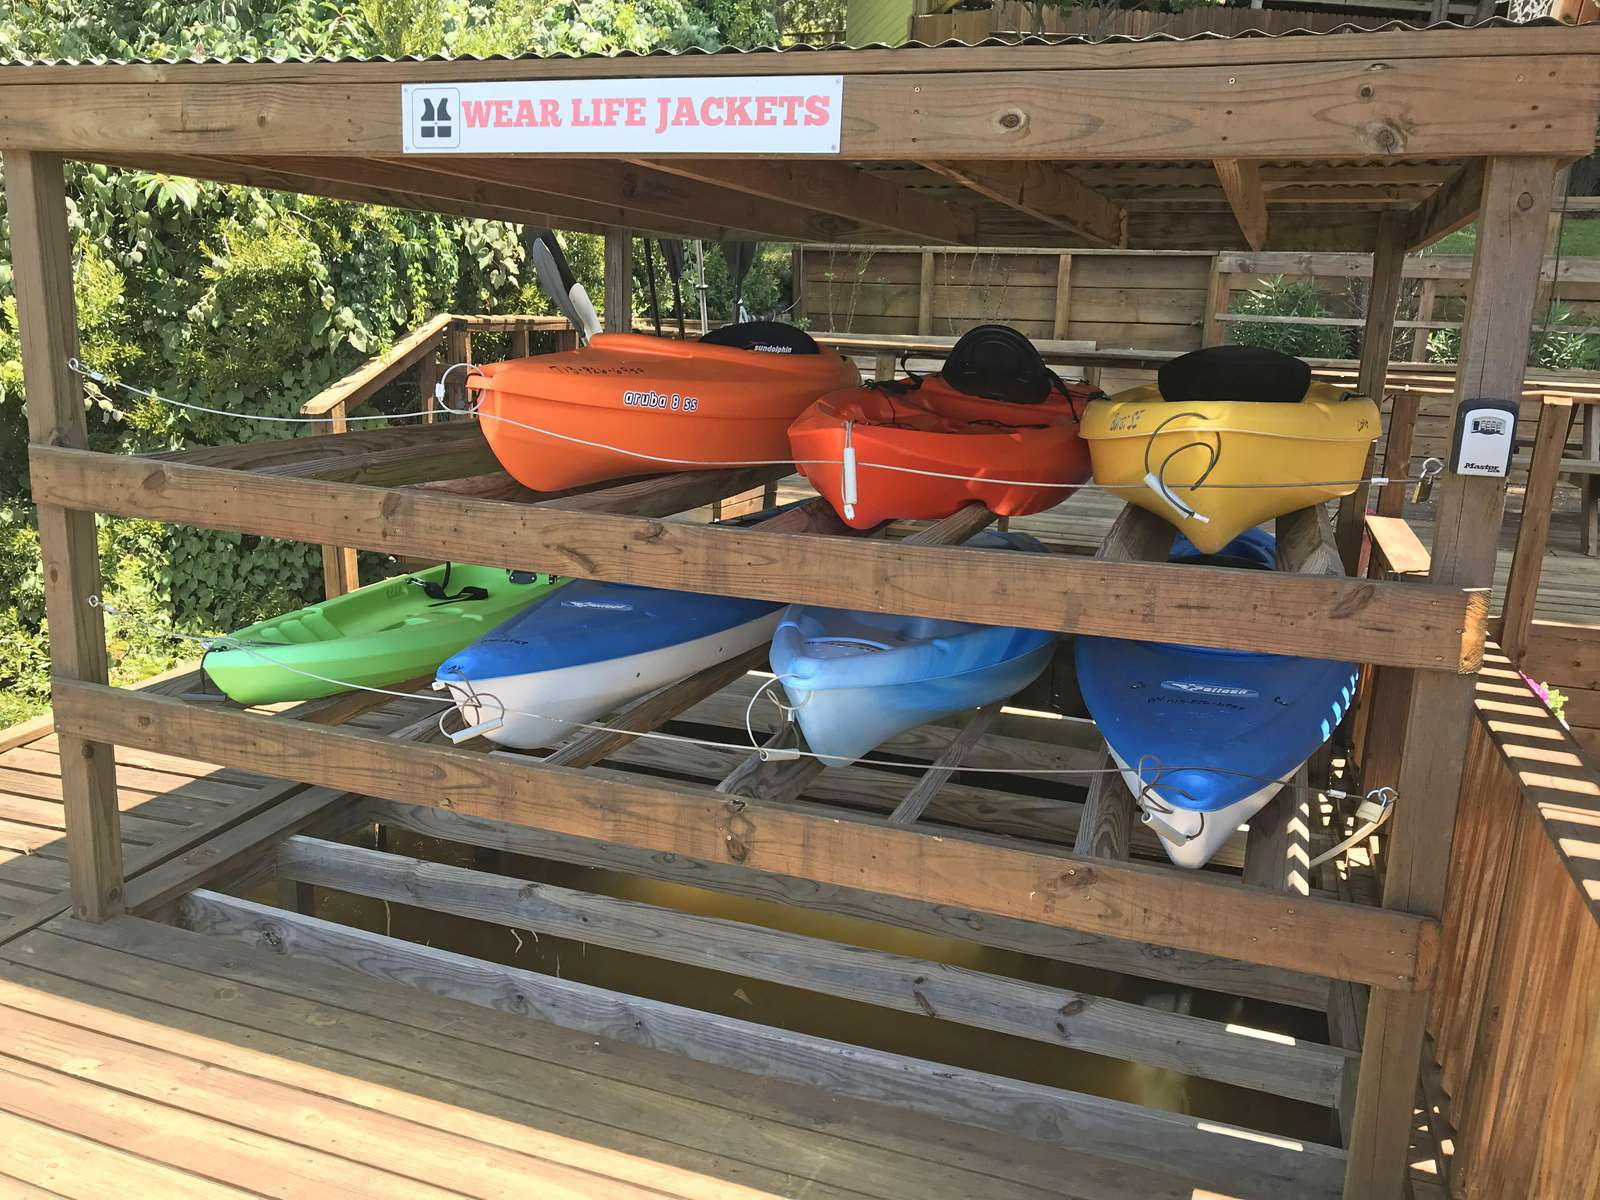 The kayaks come with the home and are for you and your guests to use.